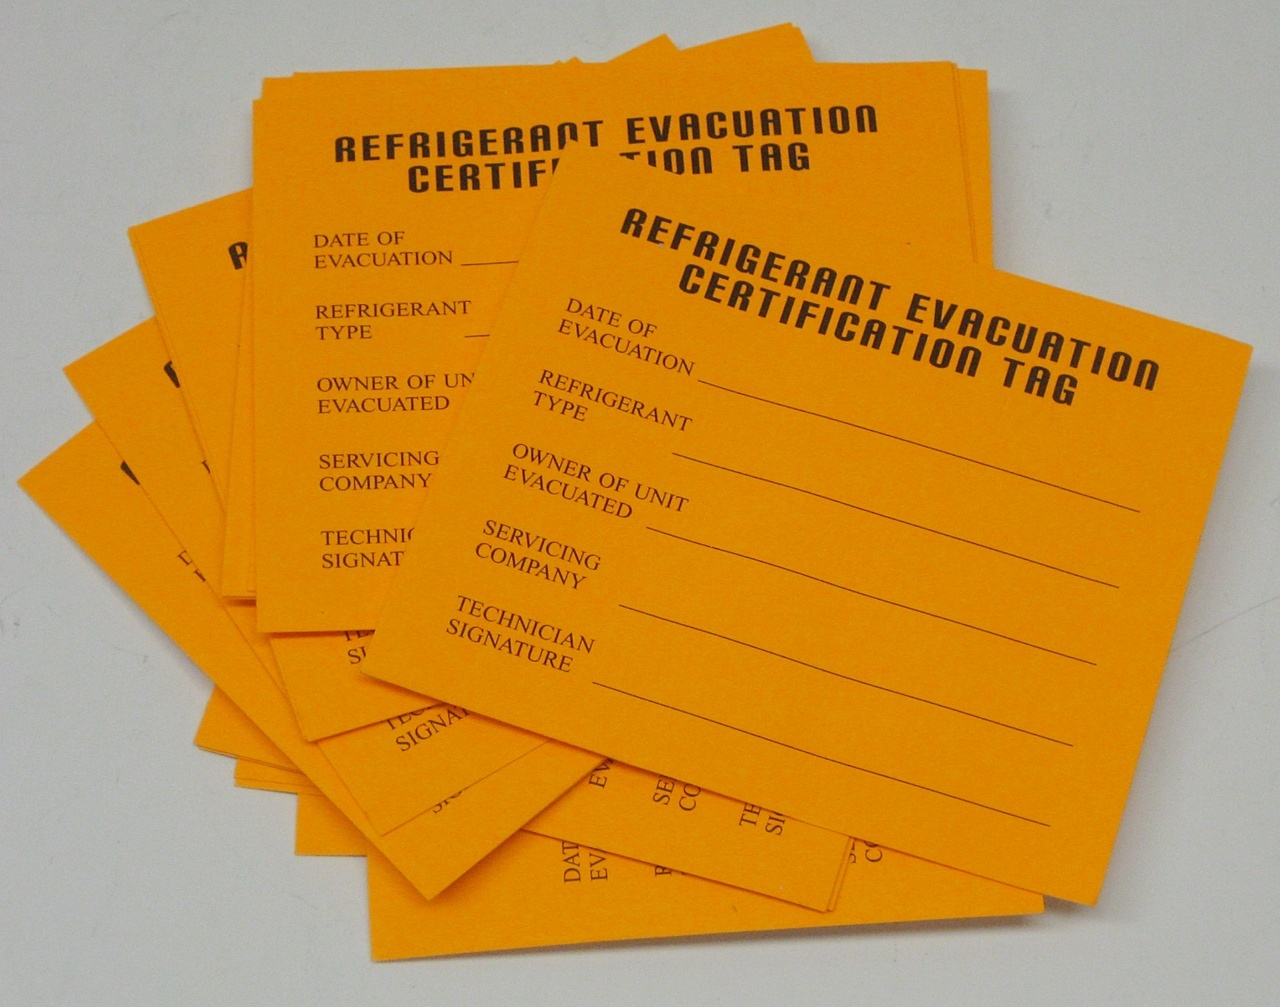 Refrigeration Evacuation Recover Cerification Tag Stickers 24 Pack